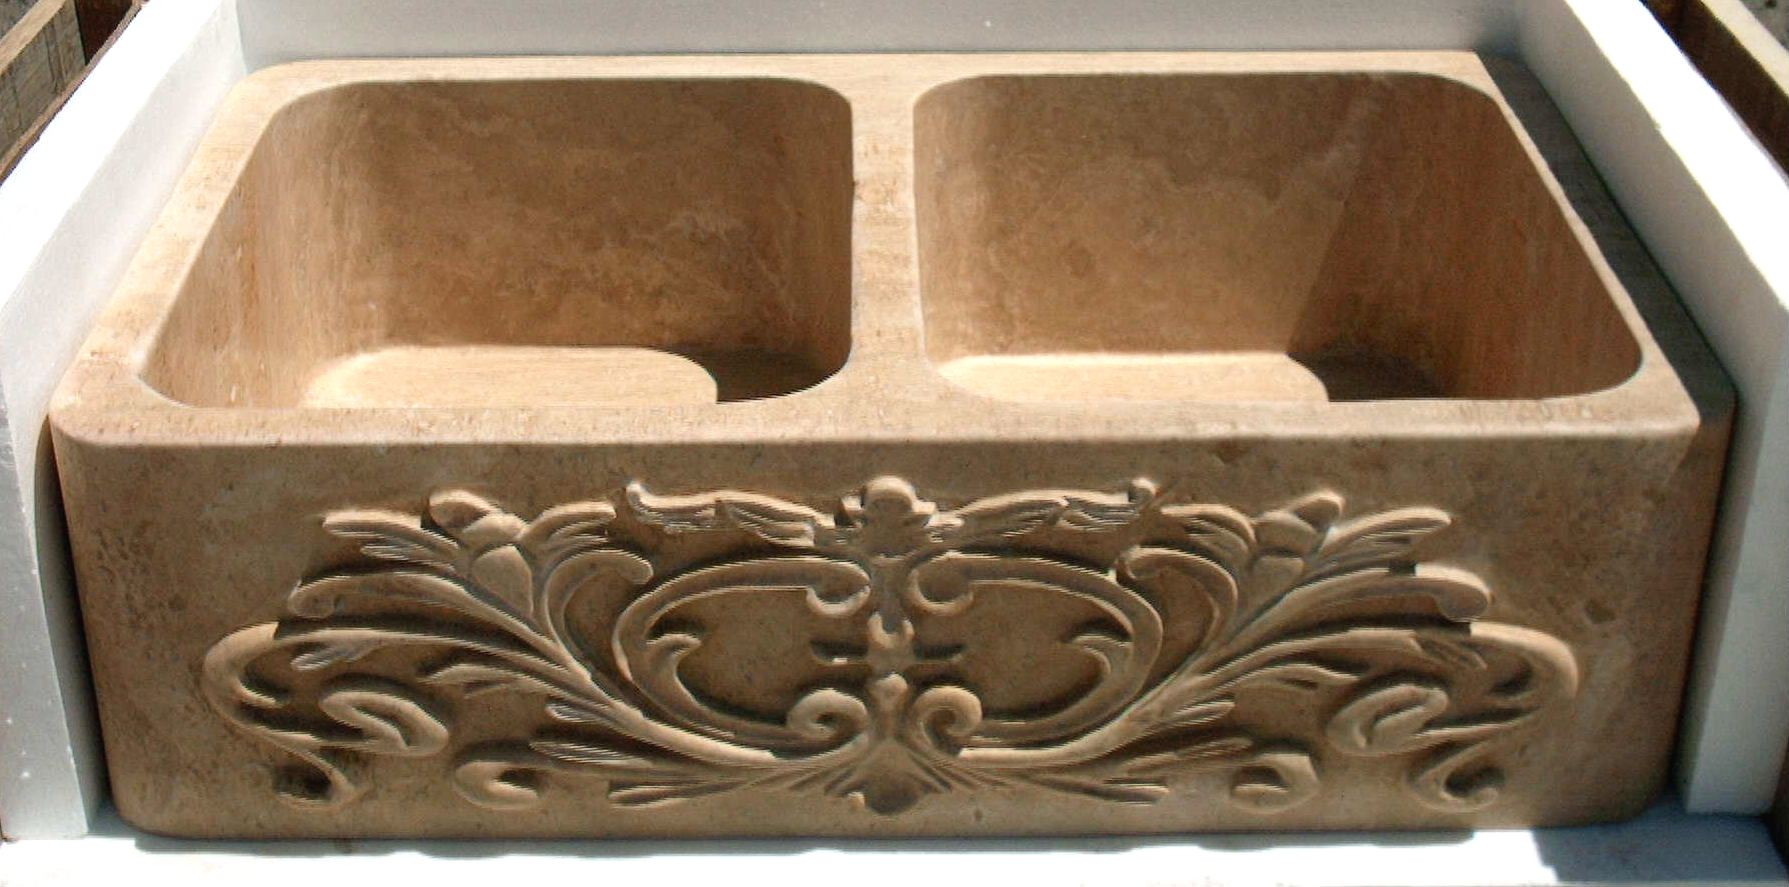 Hand Carved Stone Farm Sink - Magnolia